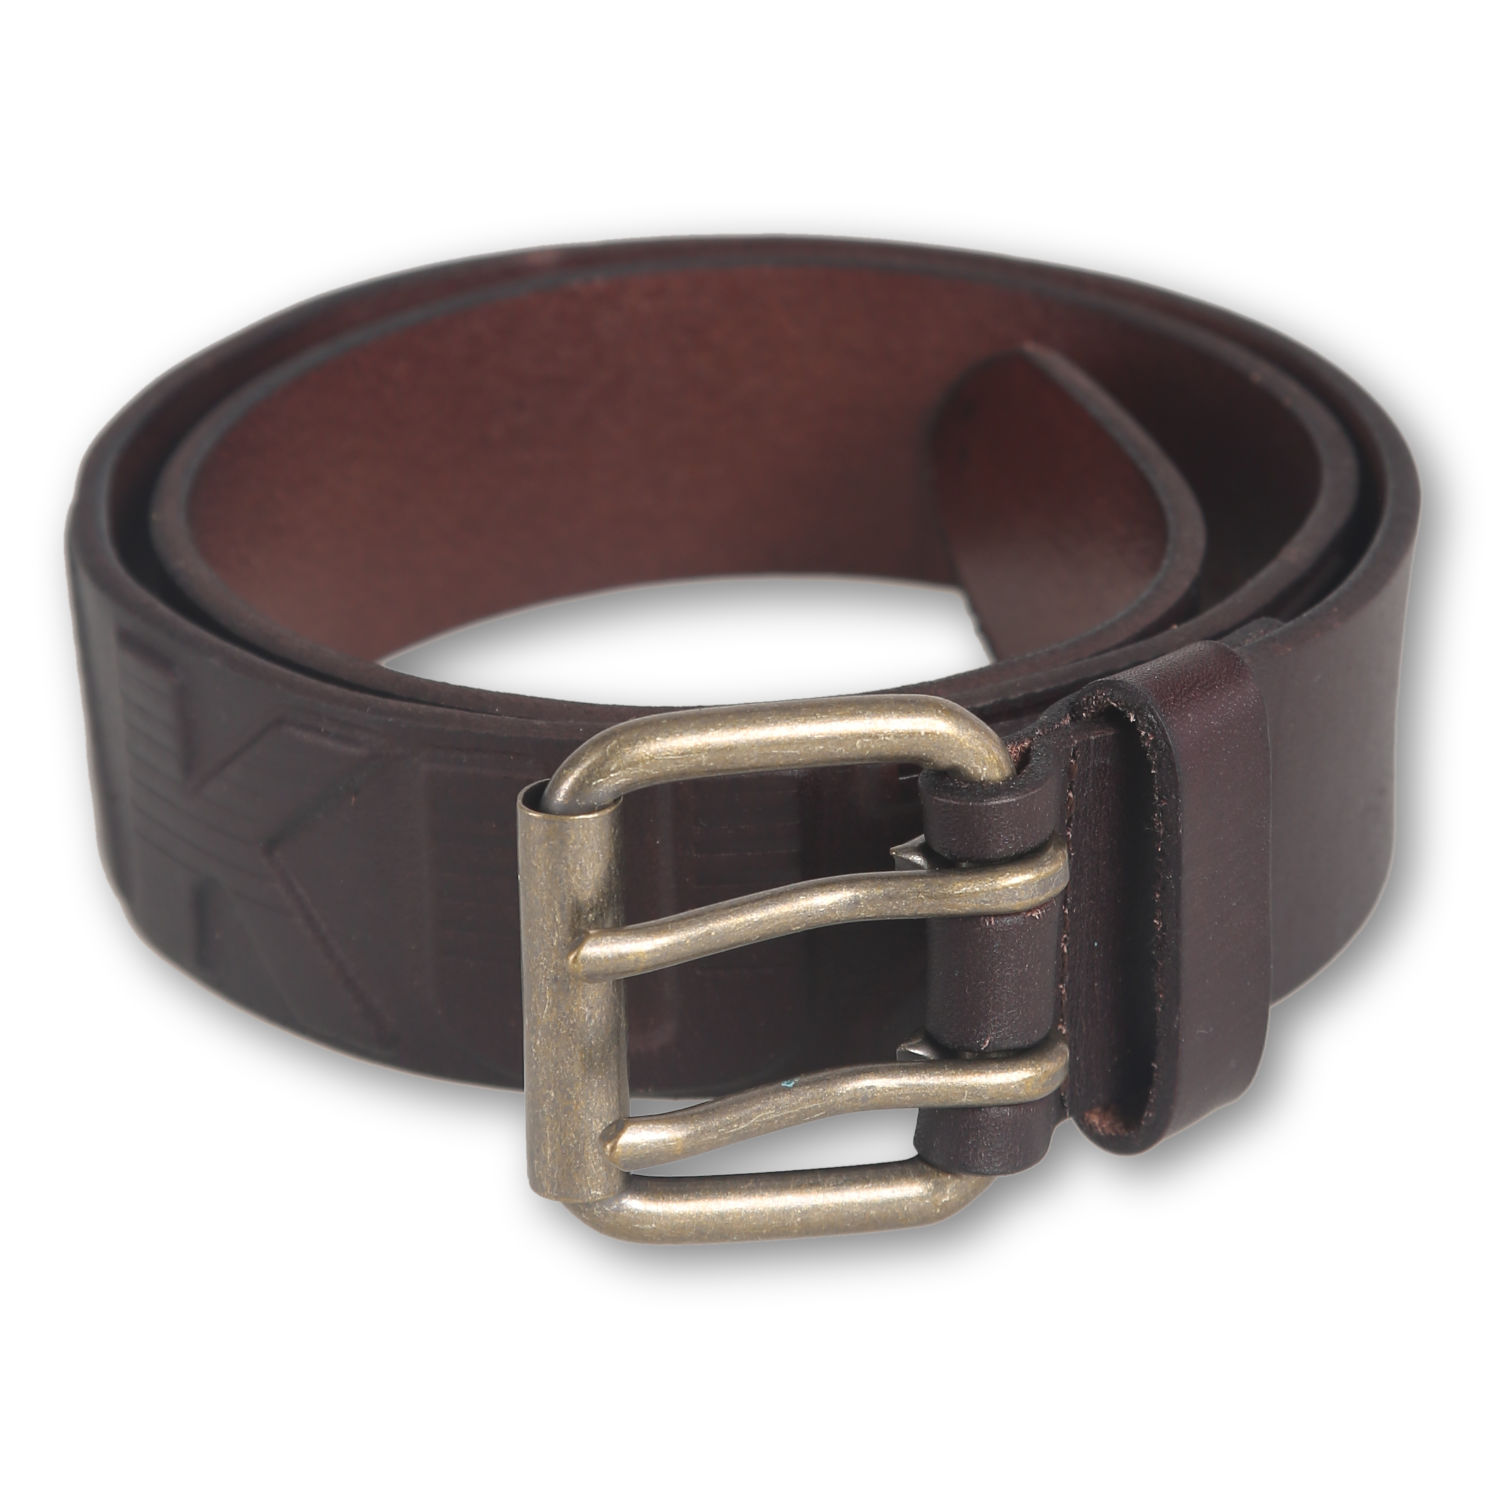 Profile Leather Belt